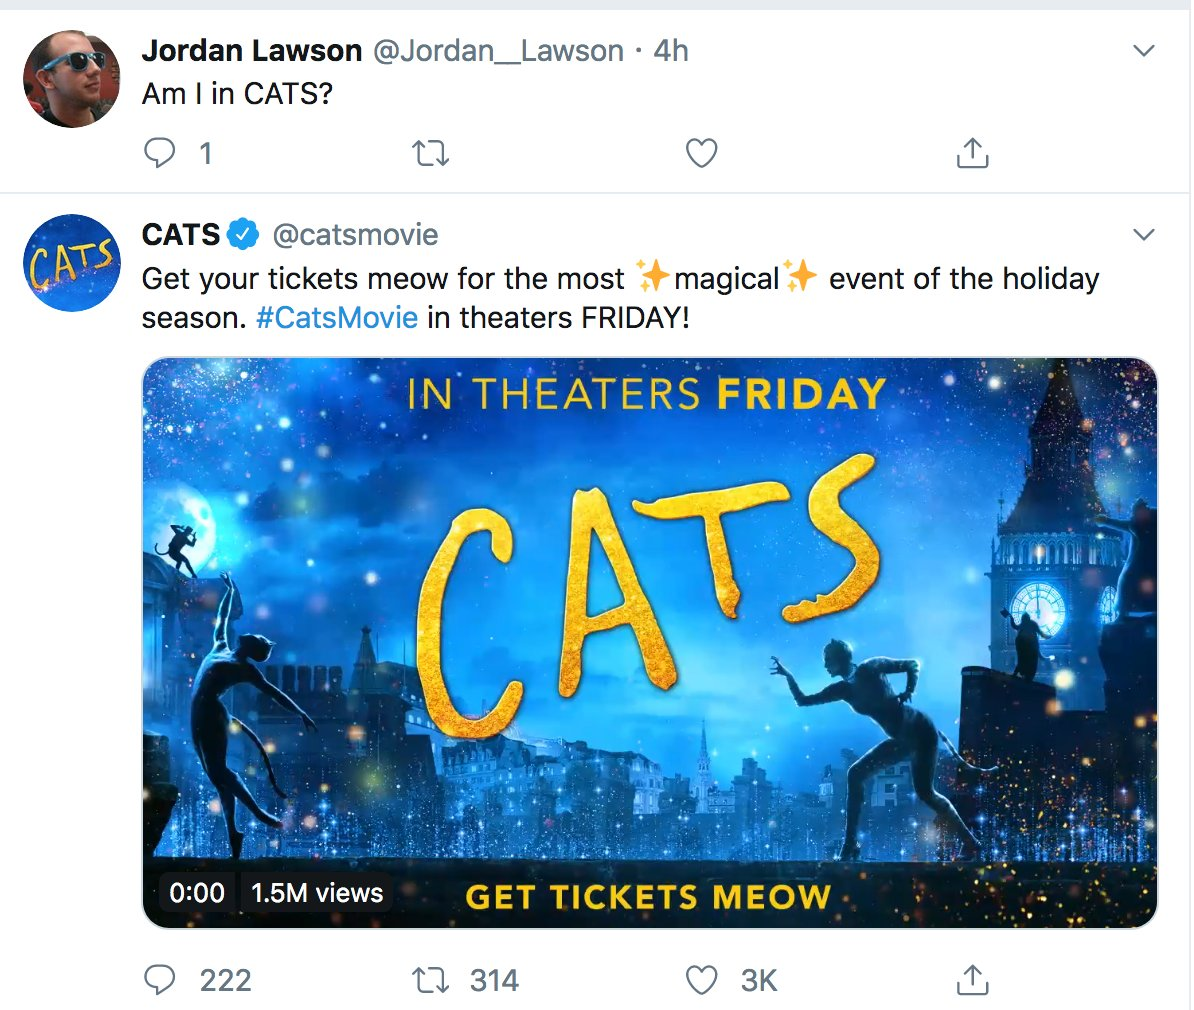 @Jordan__Lawson You are in Cats. According to my Twitter feed.